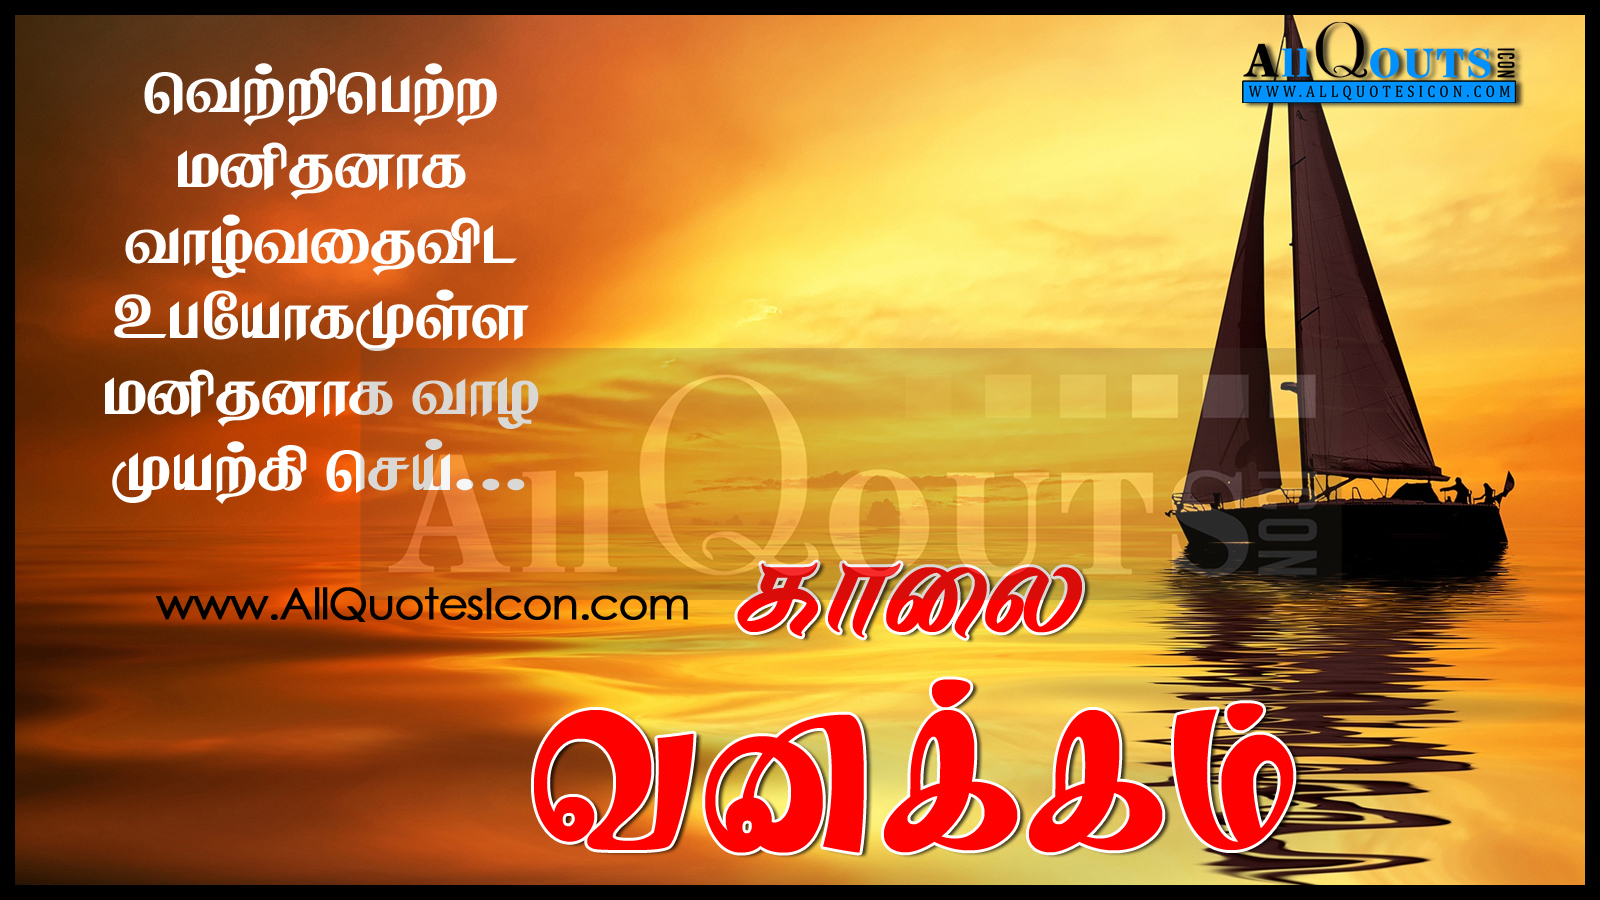 Best Tamil Subhodayam Images With Quotes Nice Tamil Subhodayam Quotes  Pictures Images Of Tamil Subhodayam Online